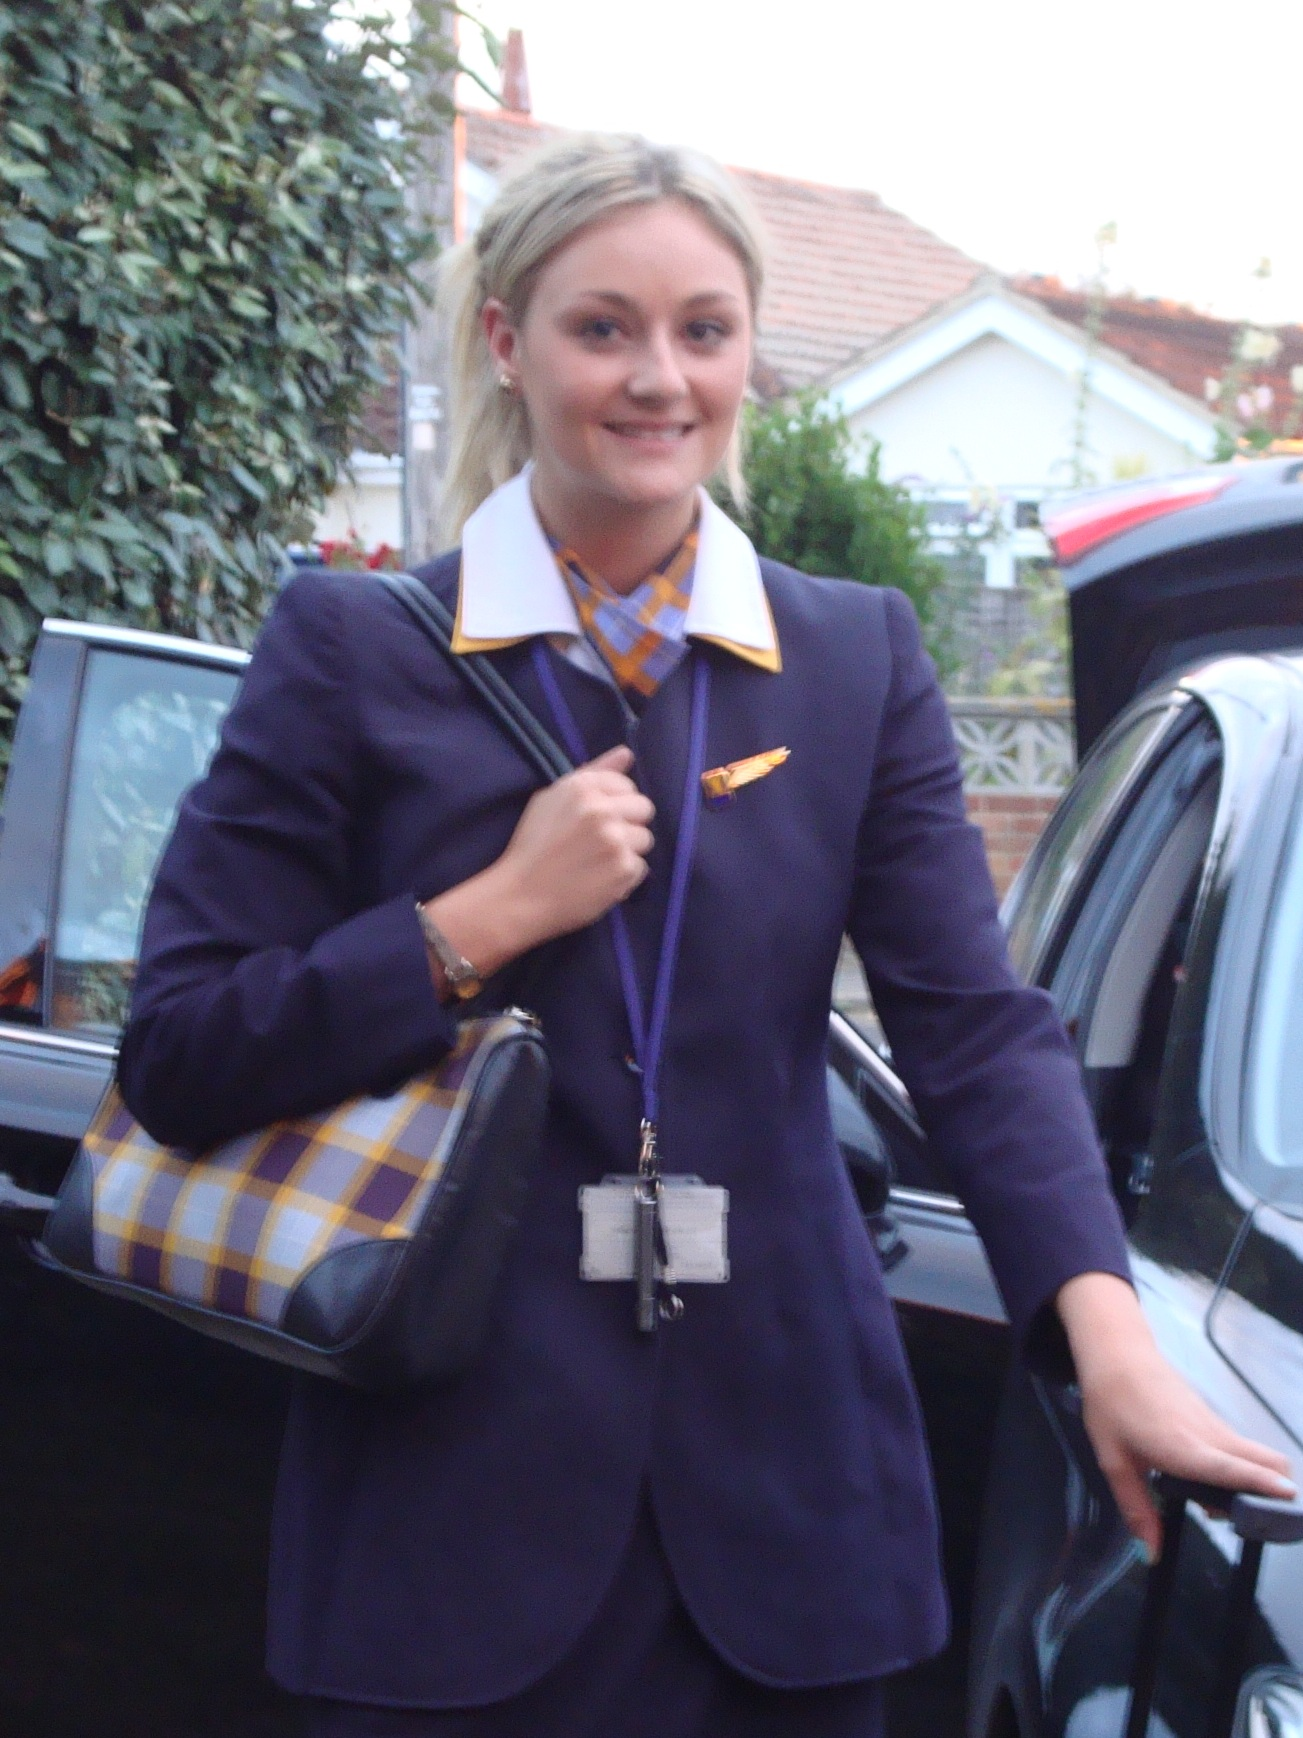 This was the old me, working as a flight attendant and not looking after myself. Just looking at this photo reminds me of how uncomfortable I used to be all the time. I feel better now than I did when I was ten years younger!